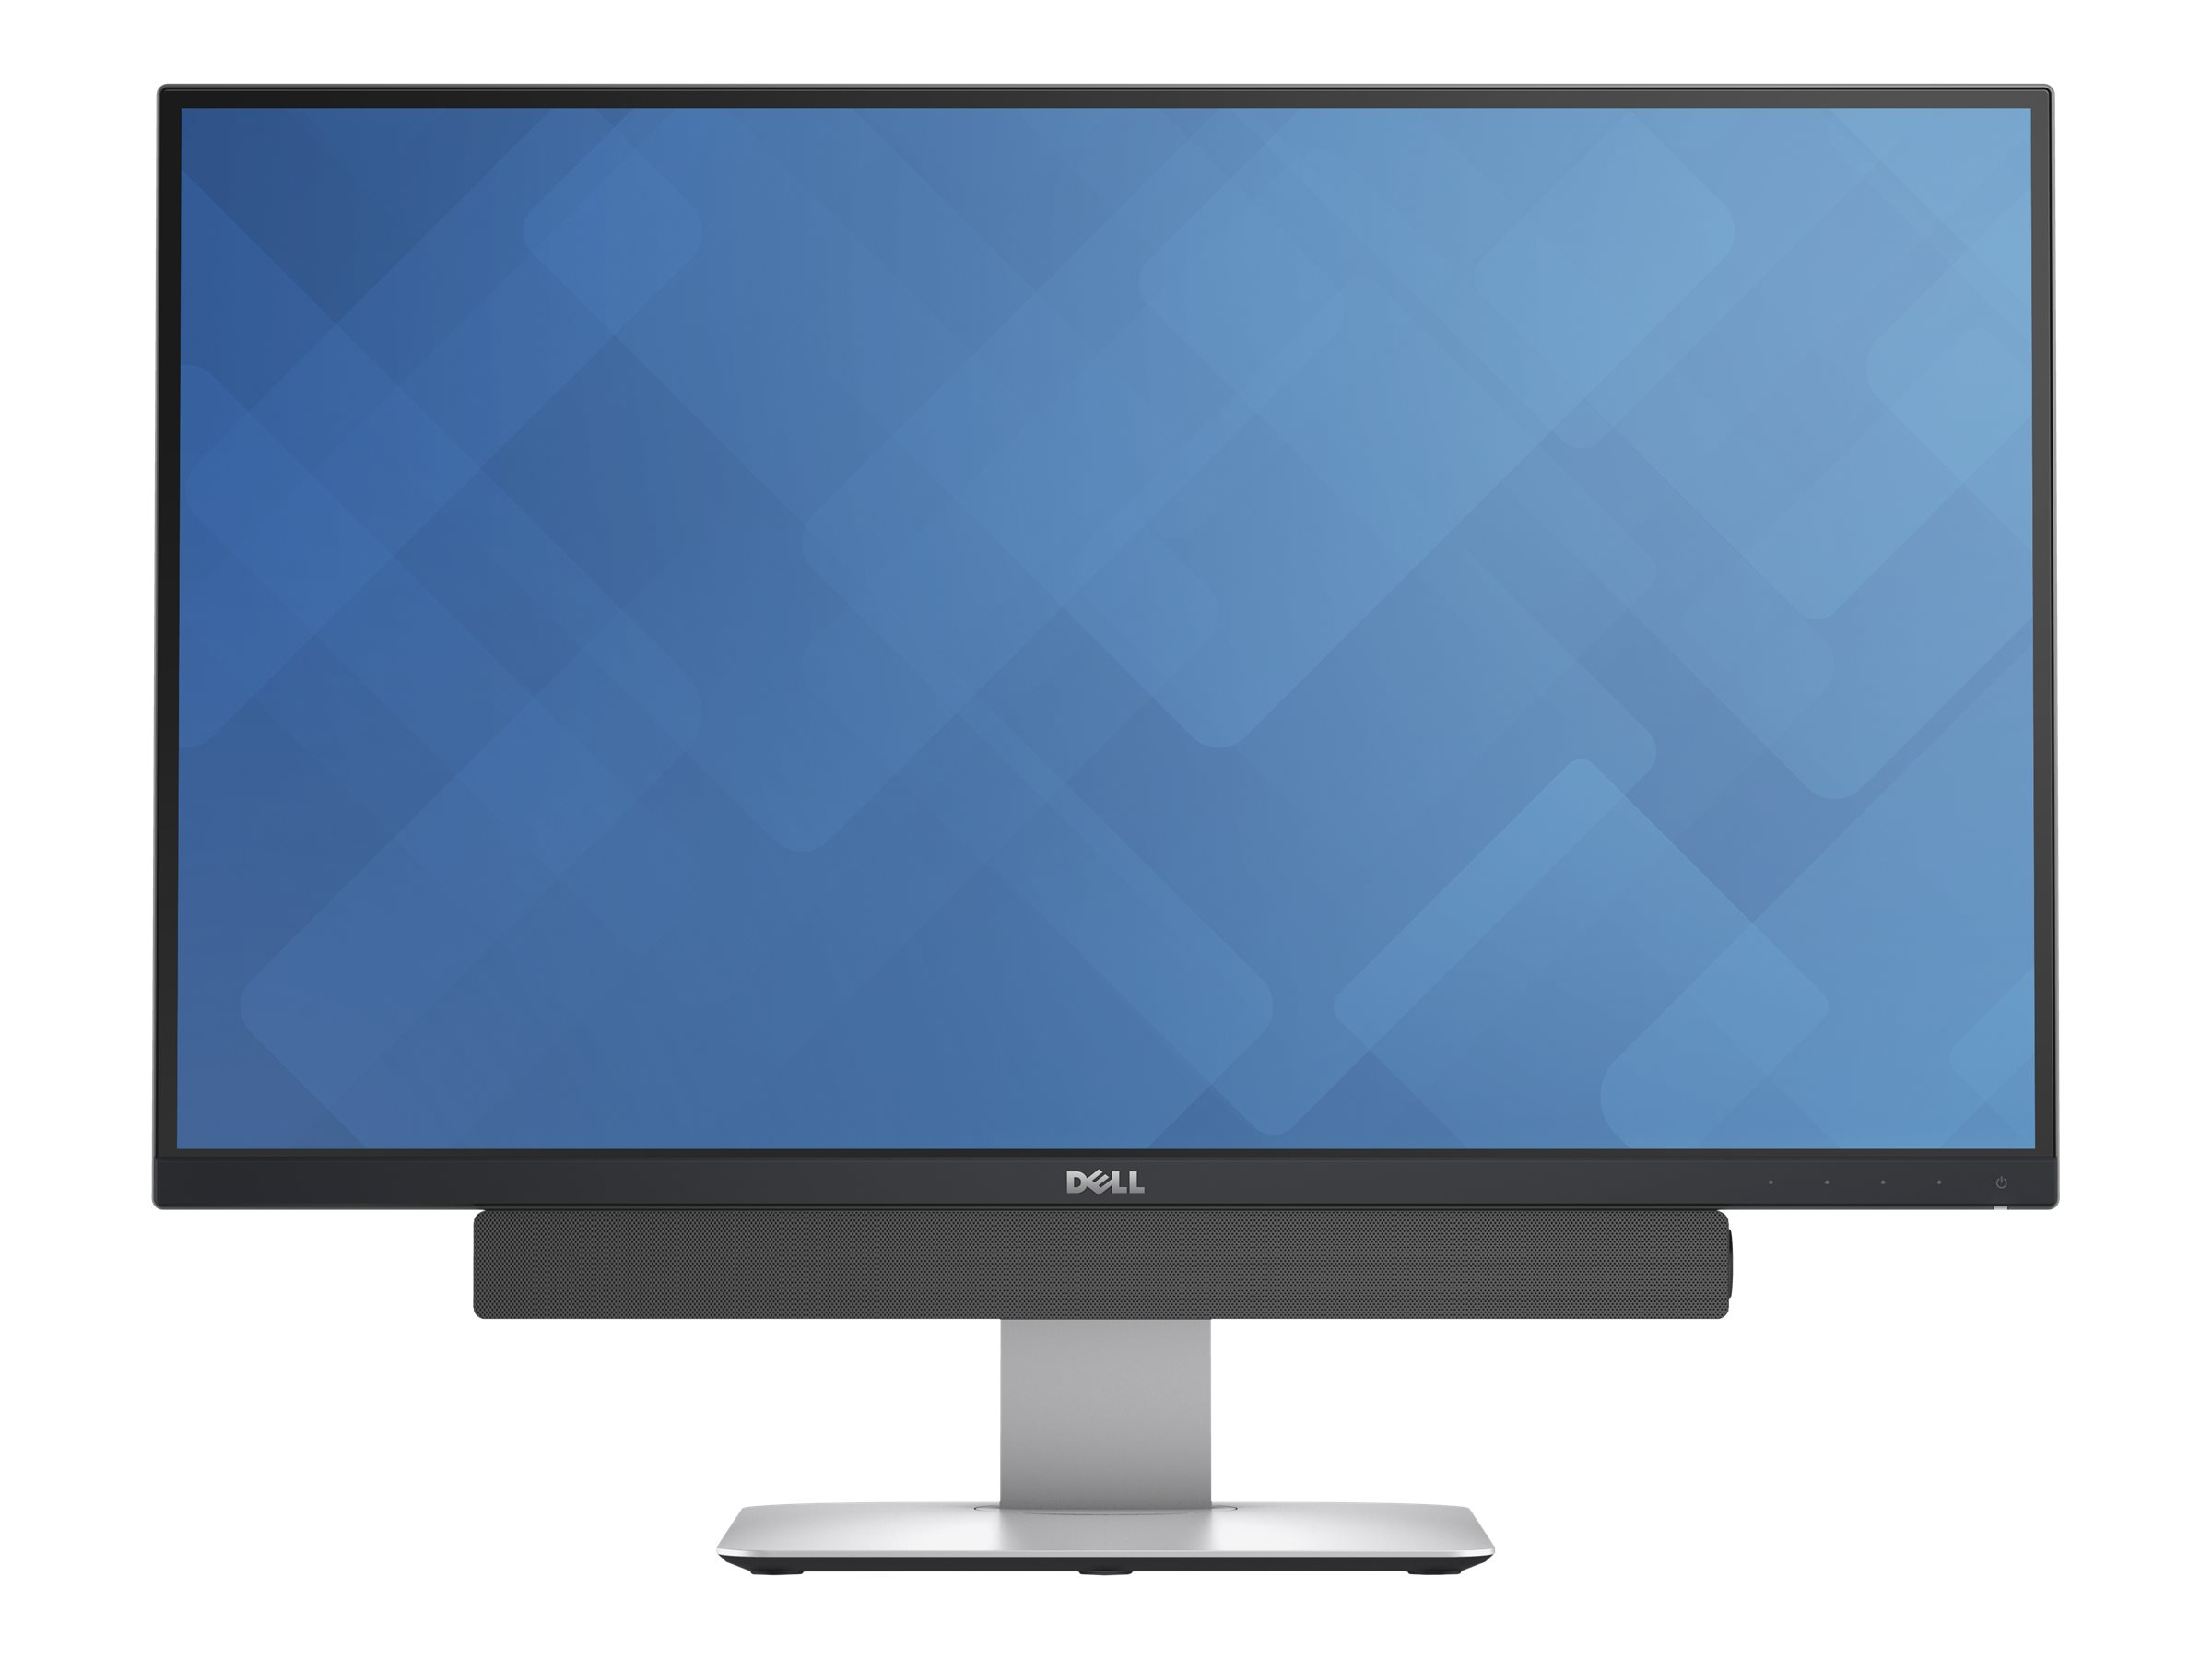 Dell AC511 - sound bar - for monitor